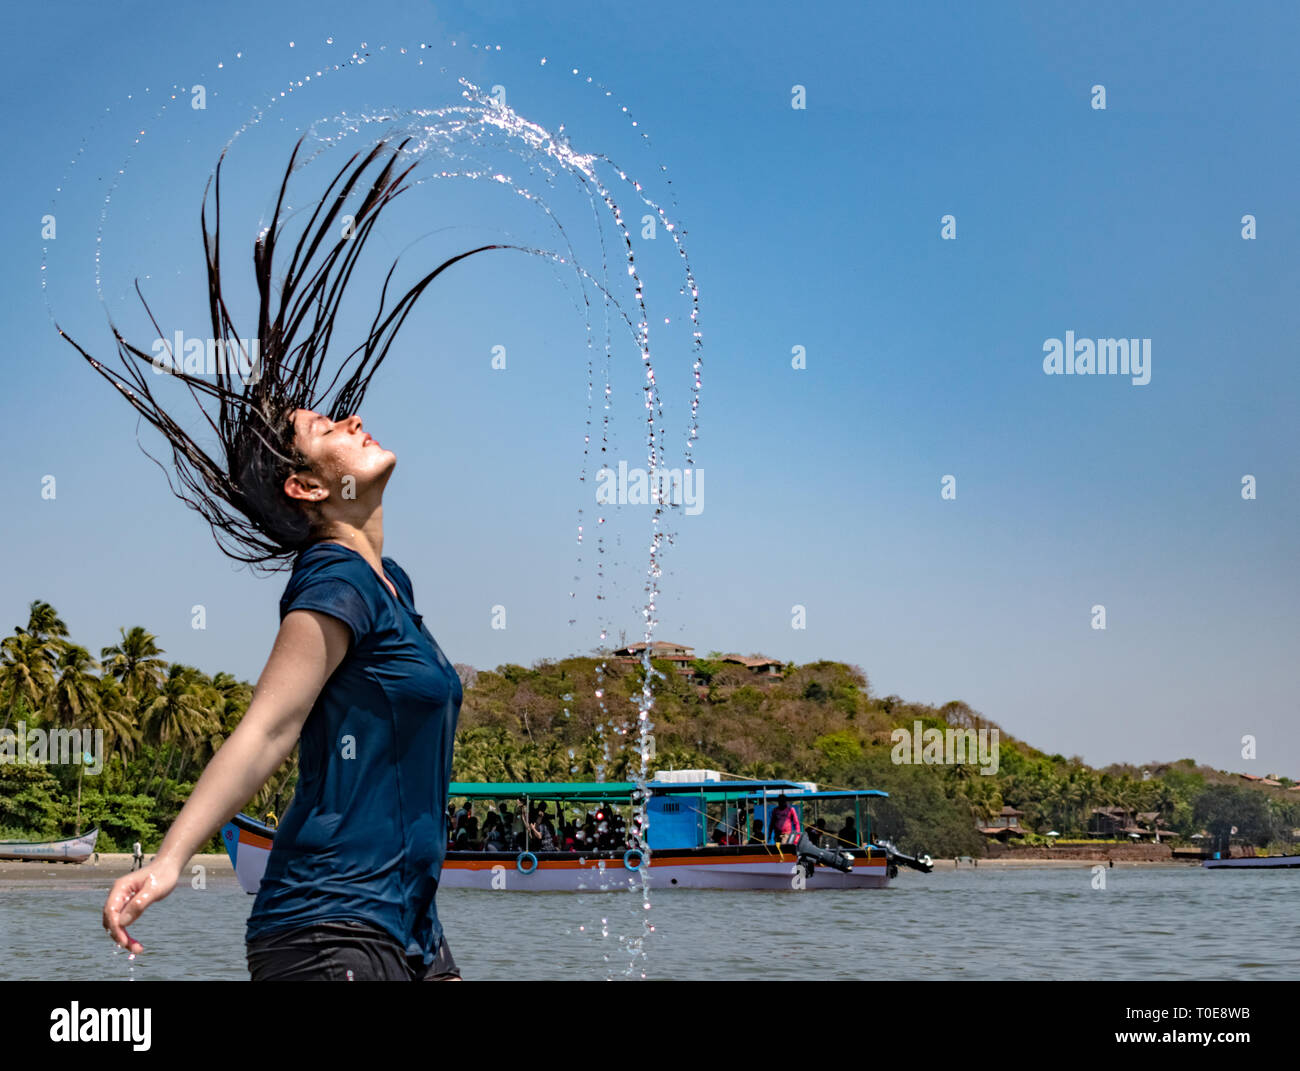 Beautiful Indian girl on solo travel is enjoying her vacations by having fun at beach by whipping her long black hairs off the water and whirling it. - Stock Image